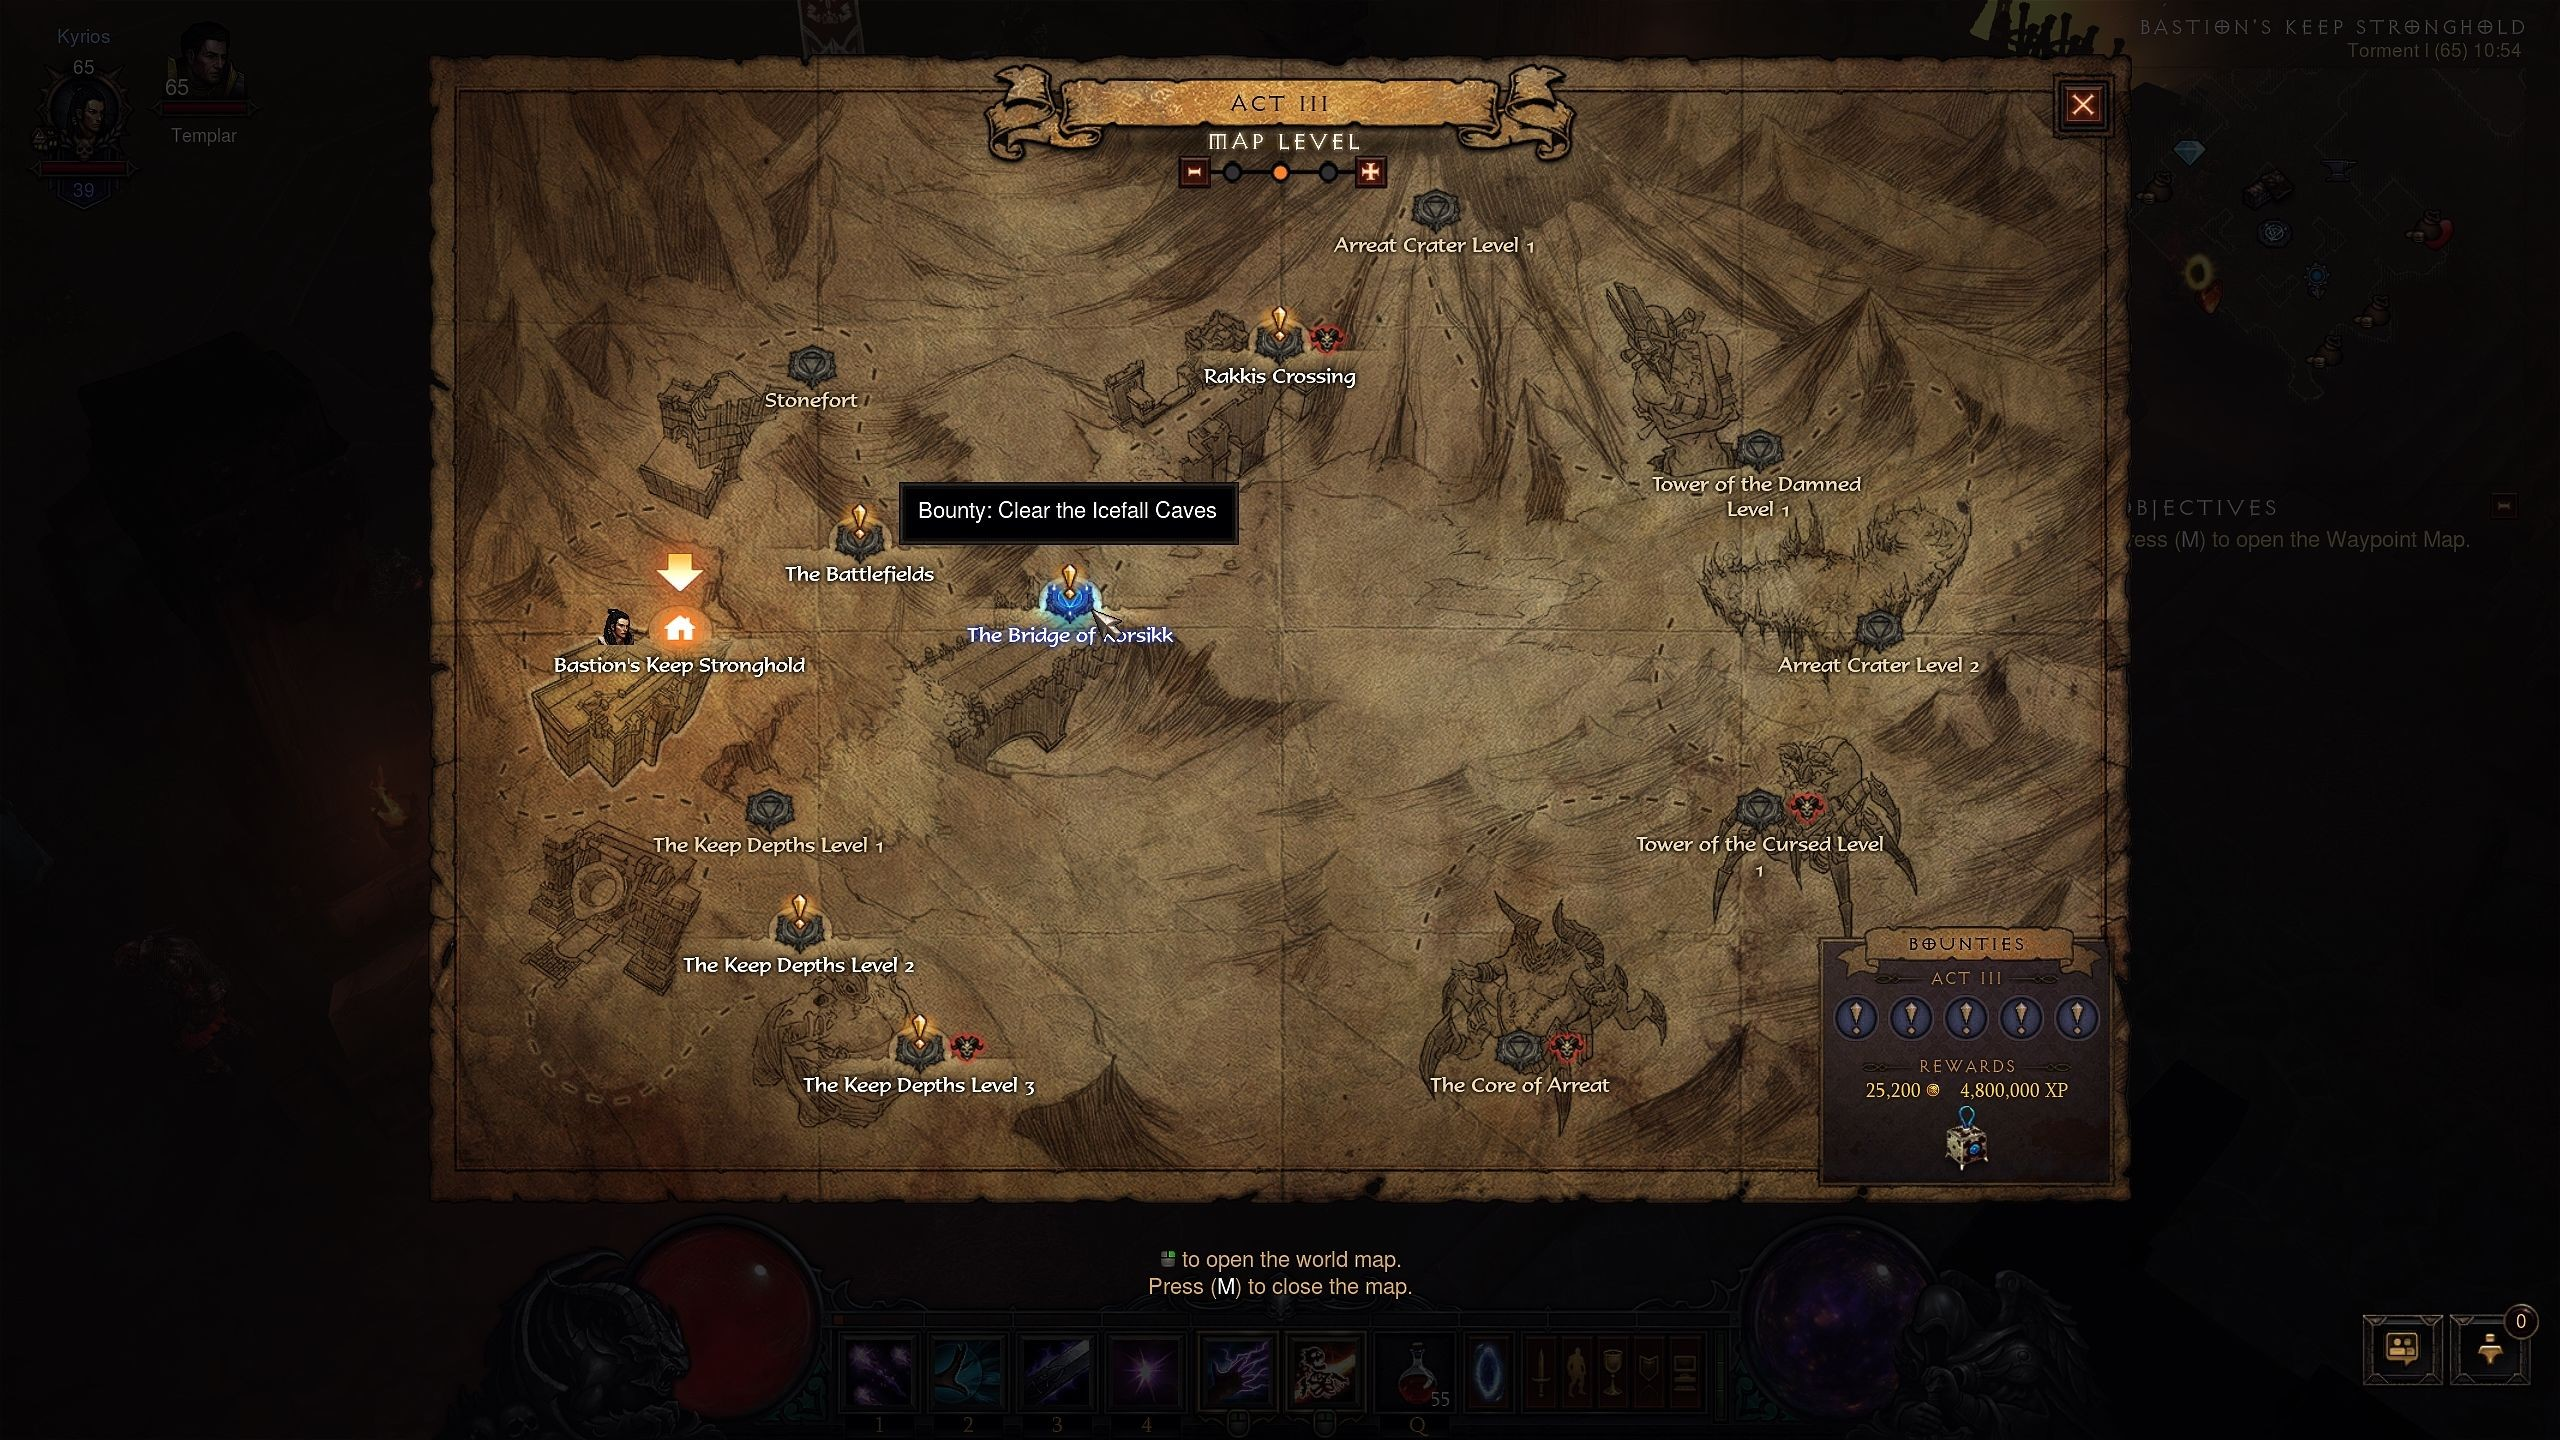 Diablo III: Reaper of Souls PC Review | GameWatcher